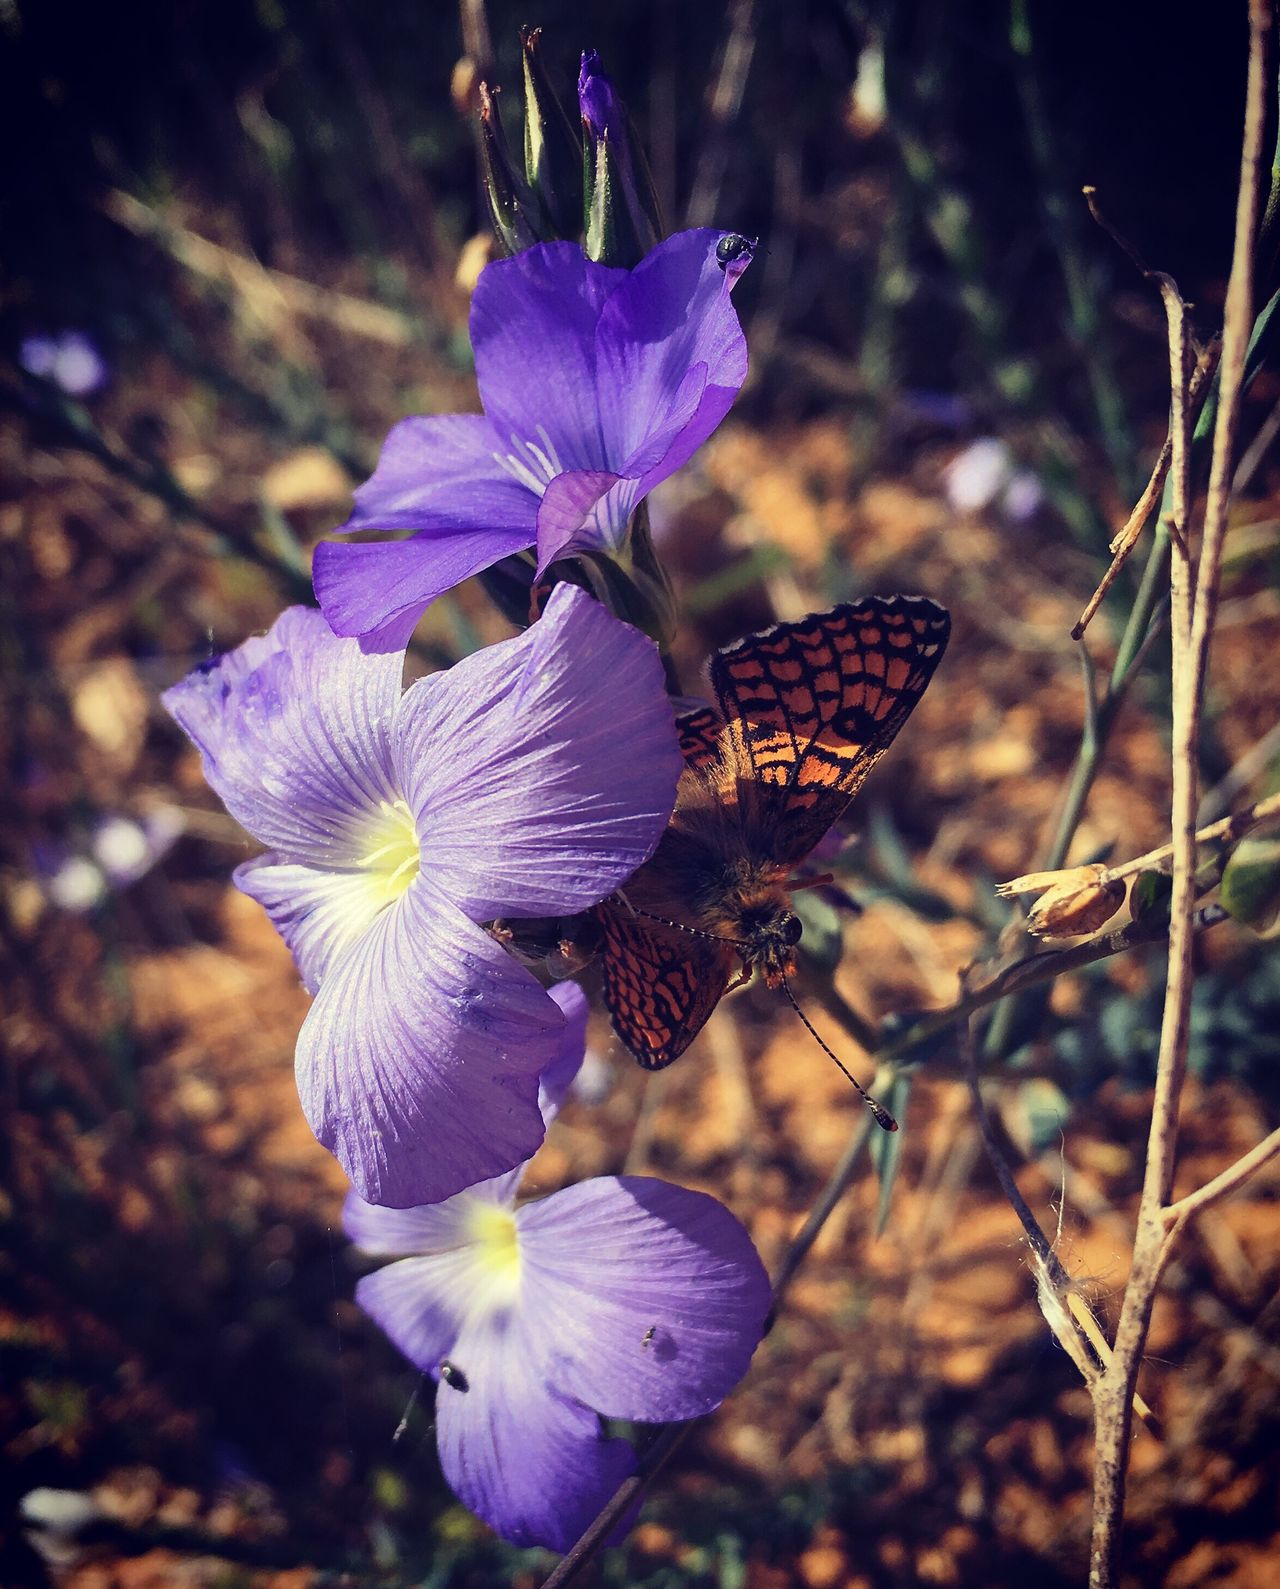 Butterfly Mariposa Nature Beauty In Nature Purple Flower Flor Countryside LeonEsp  SPAIN España